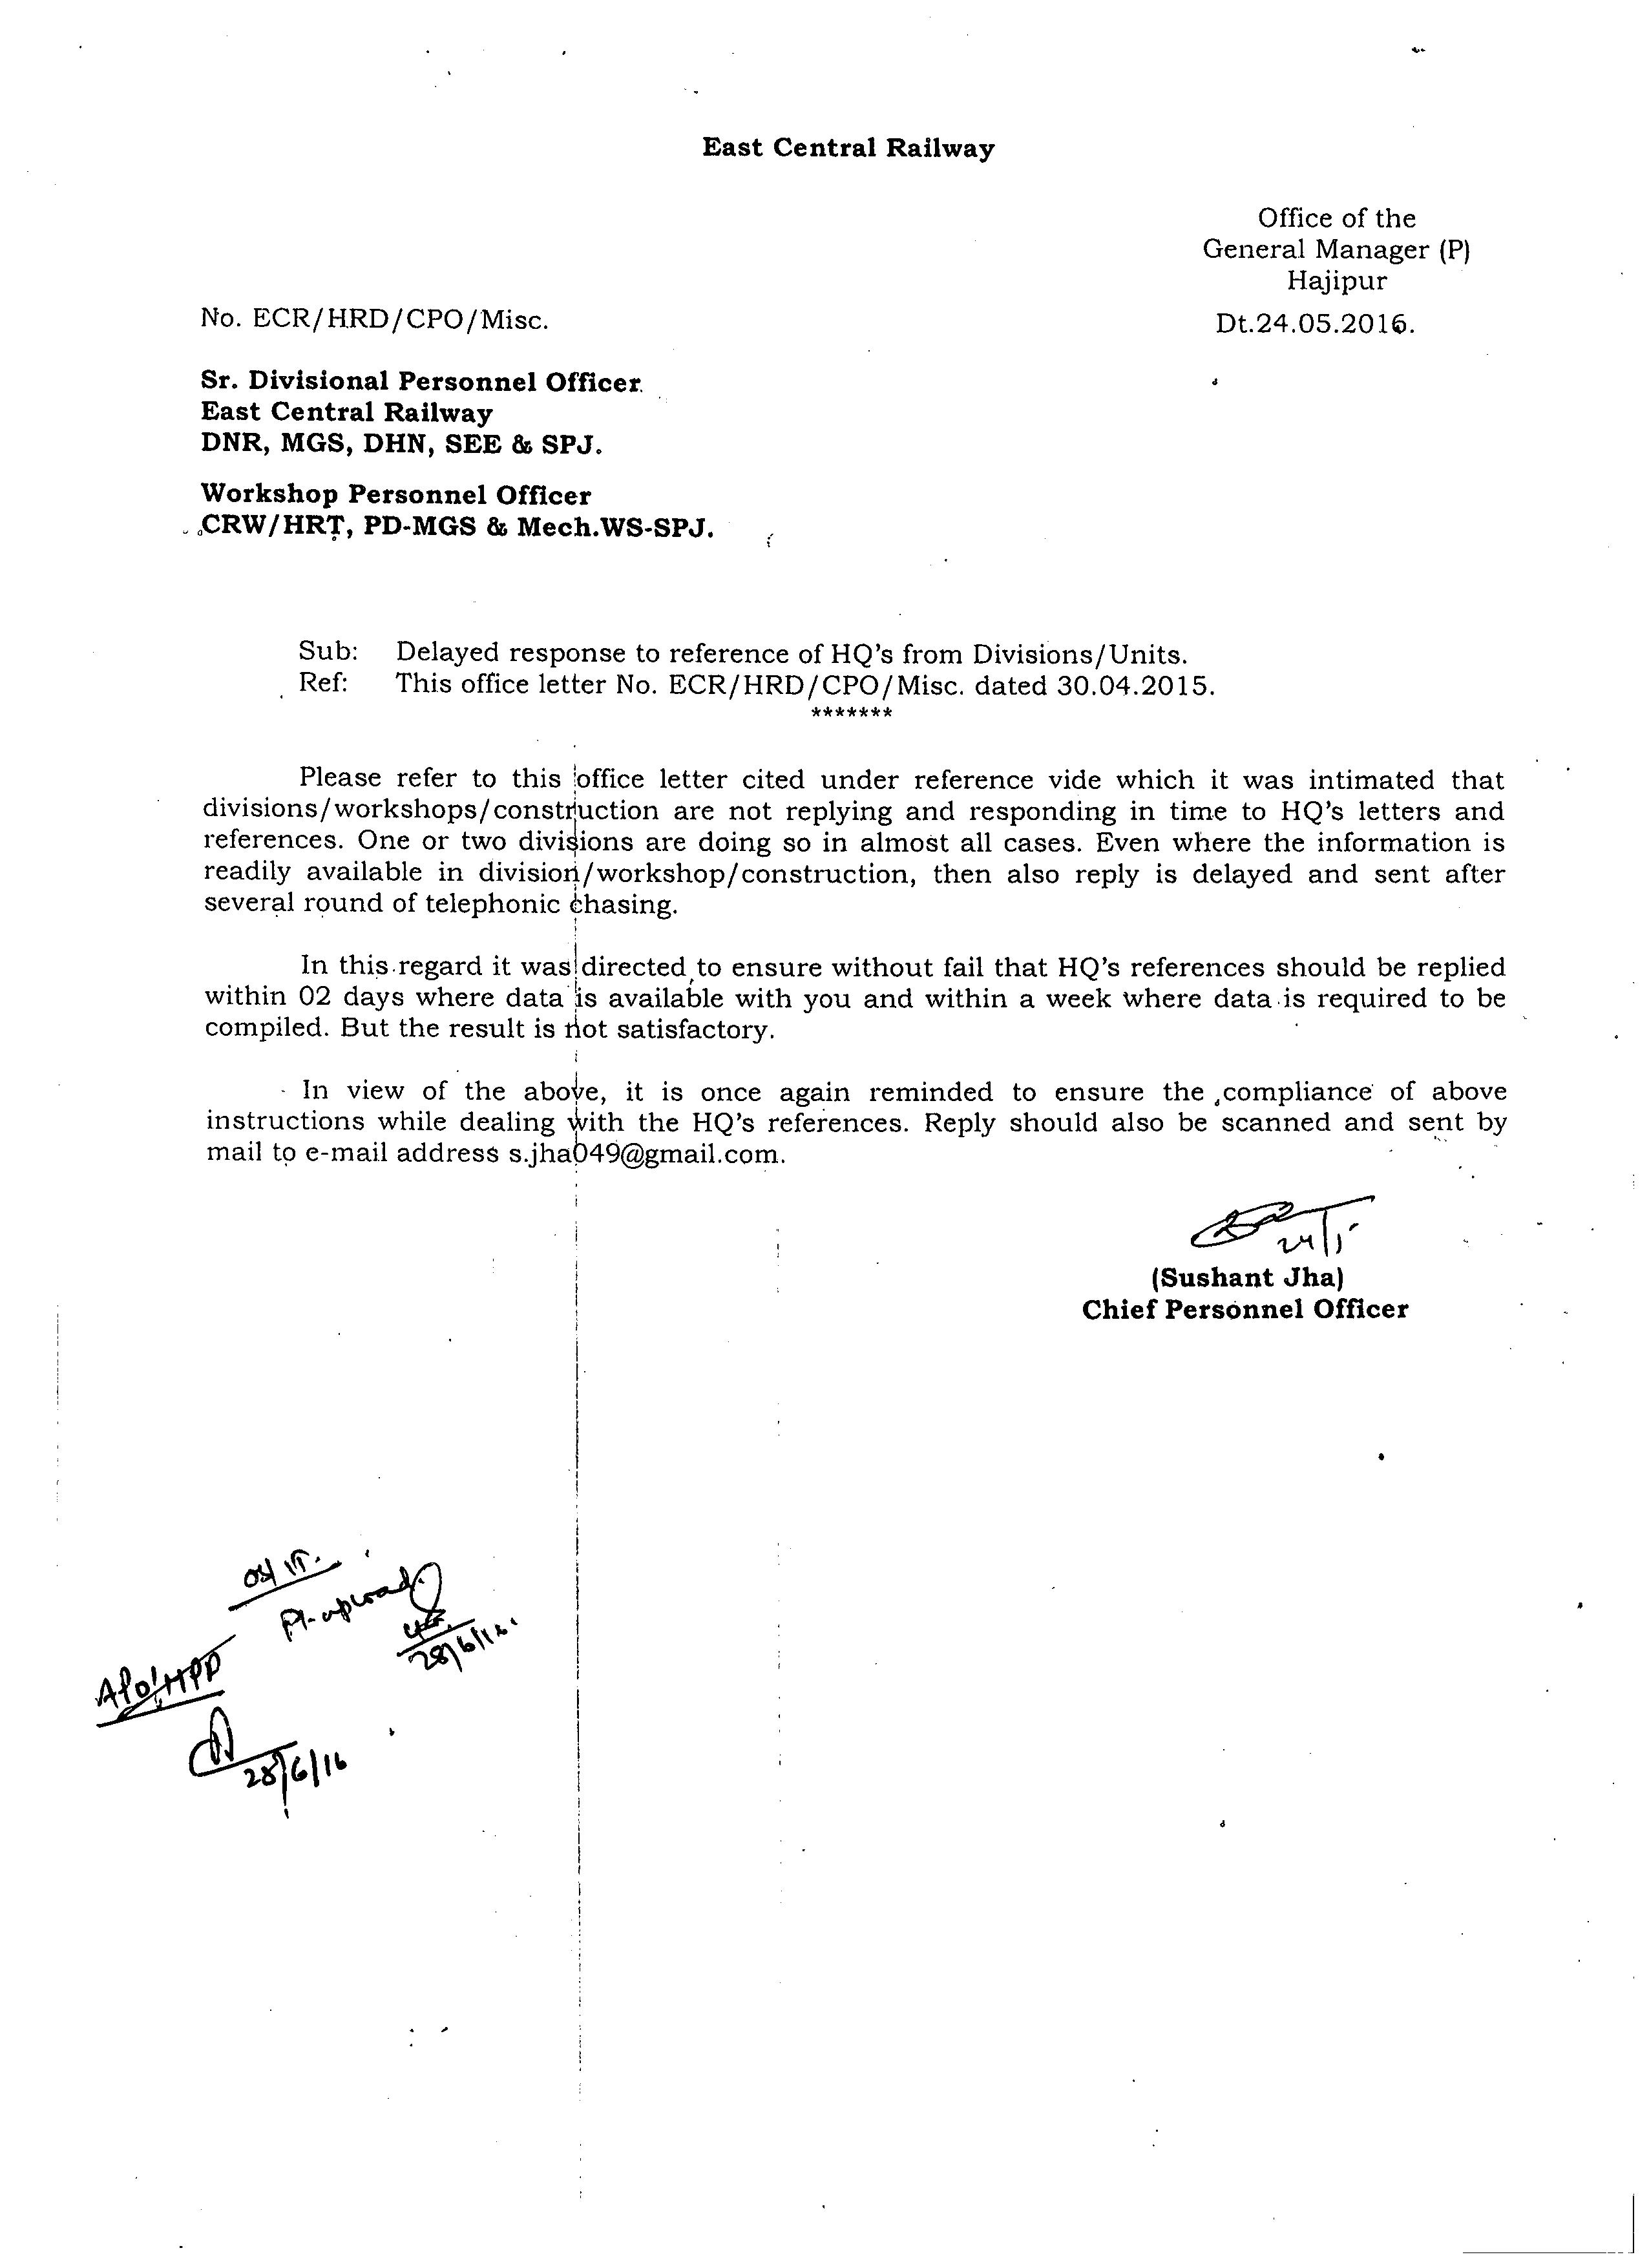 east central railways n railways portal delayed response to reference of hq s from divisions units dt 24 05 2016